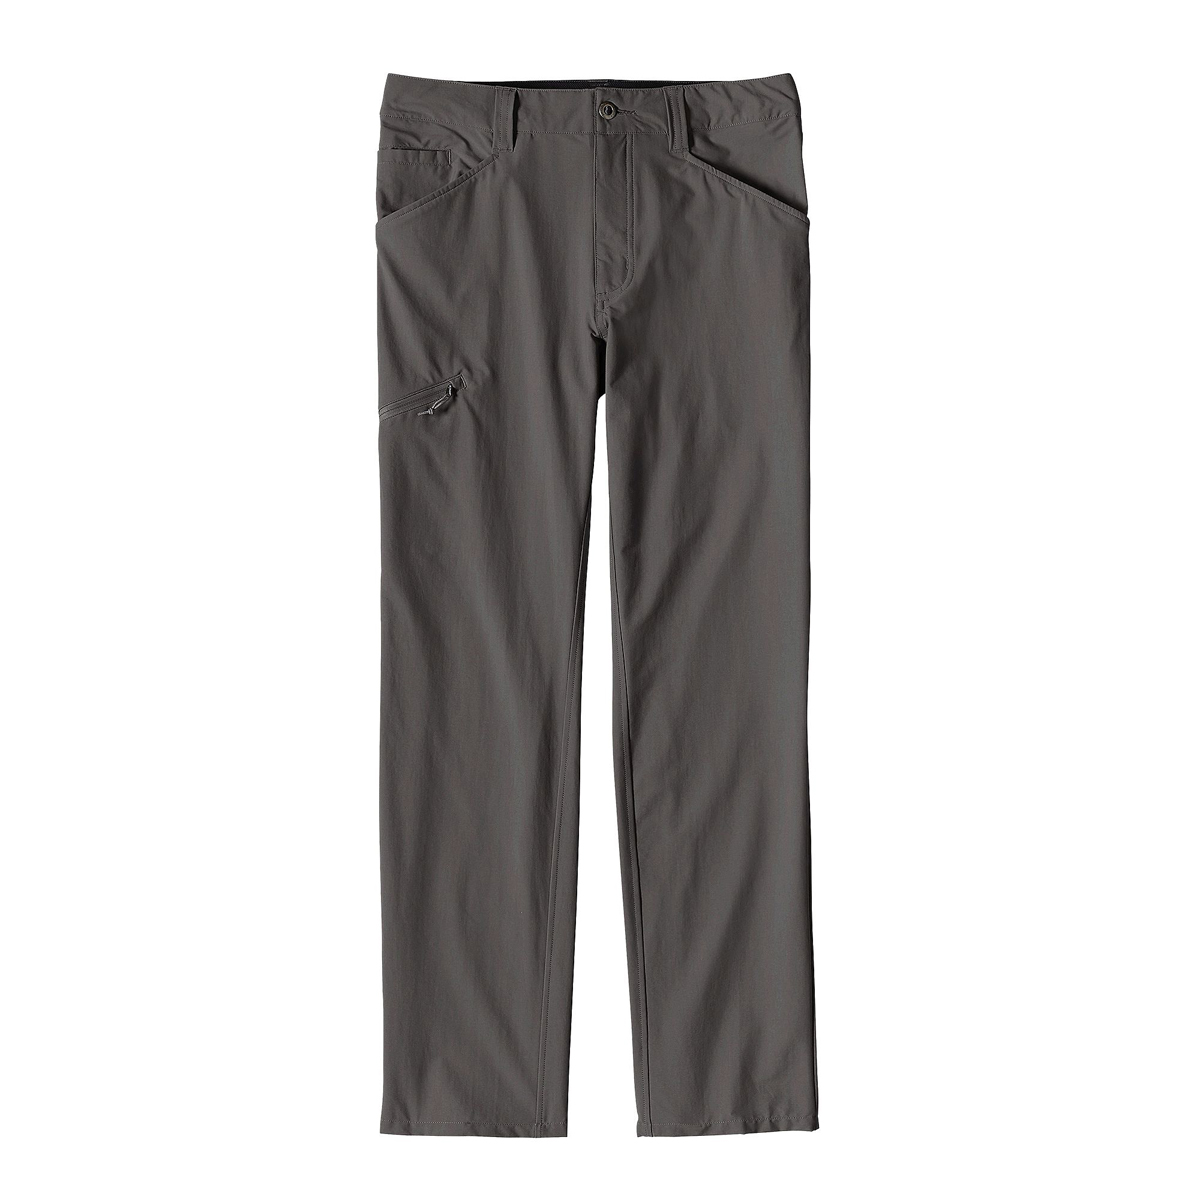 Patagonia Men's Quandary Pants - Regular (55181)